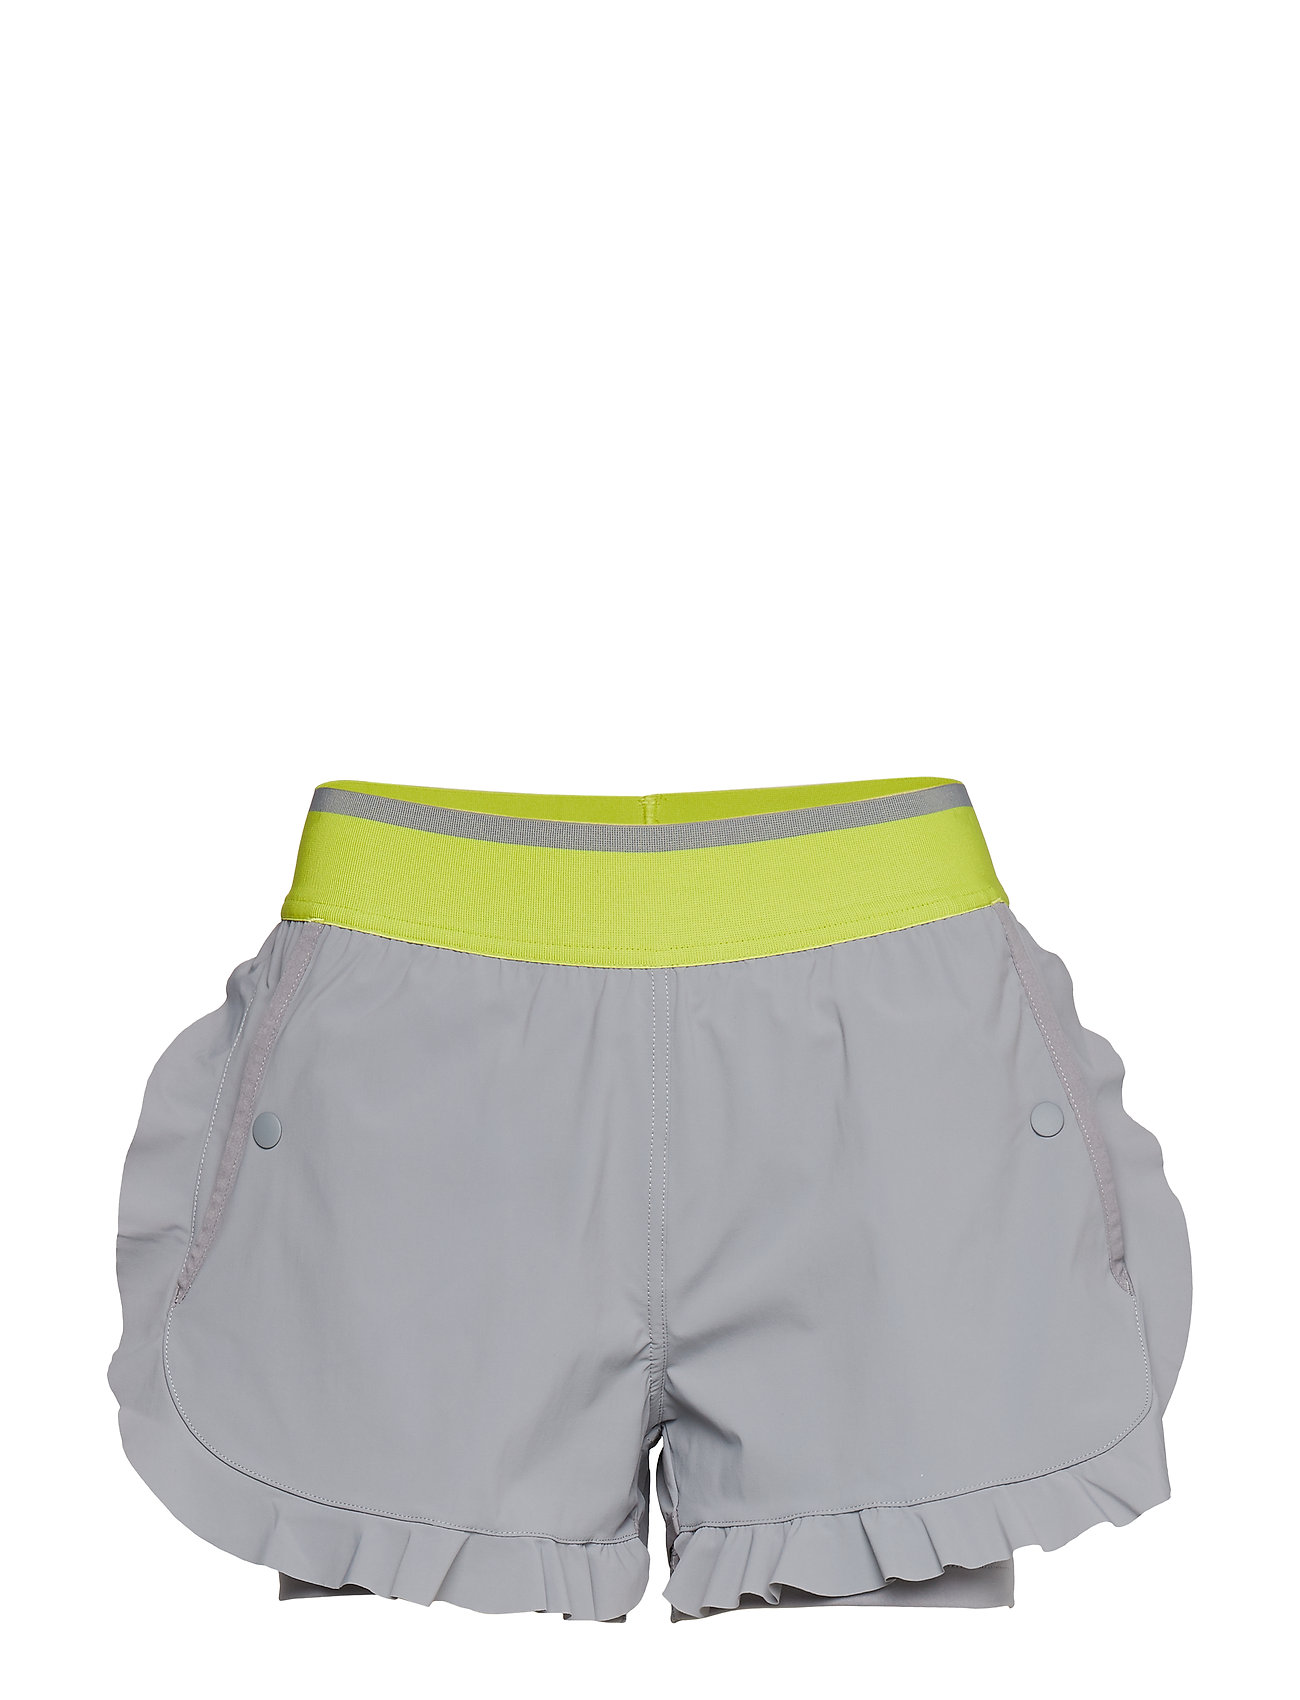 adidas by Stella McCartney HIIT SHORT - GREY